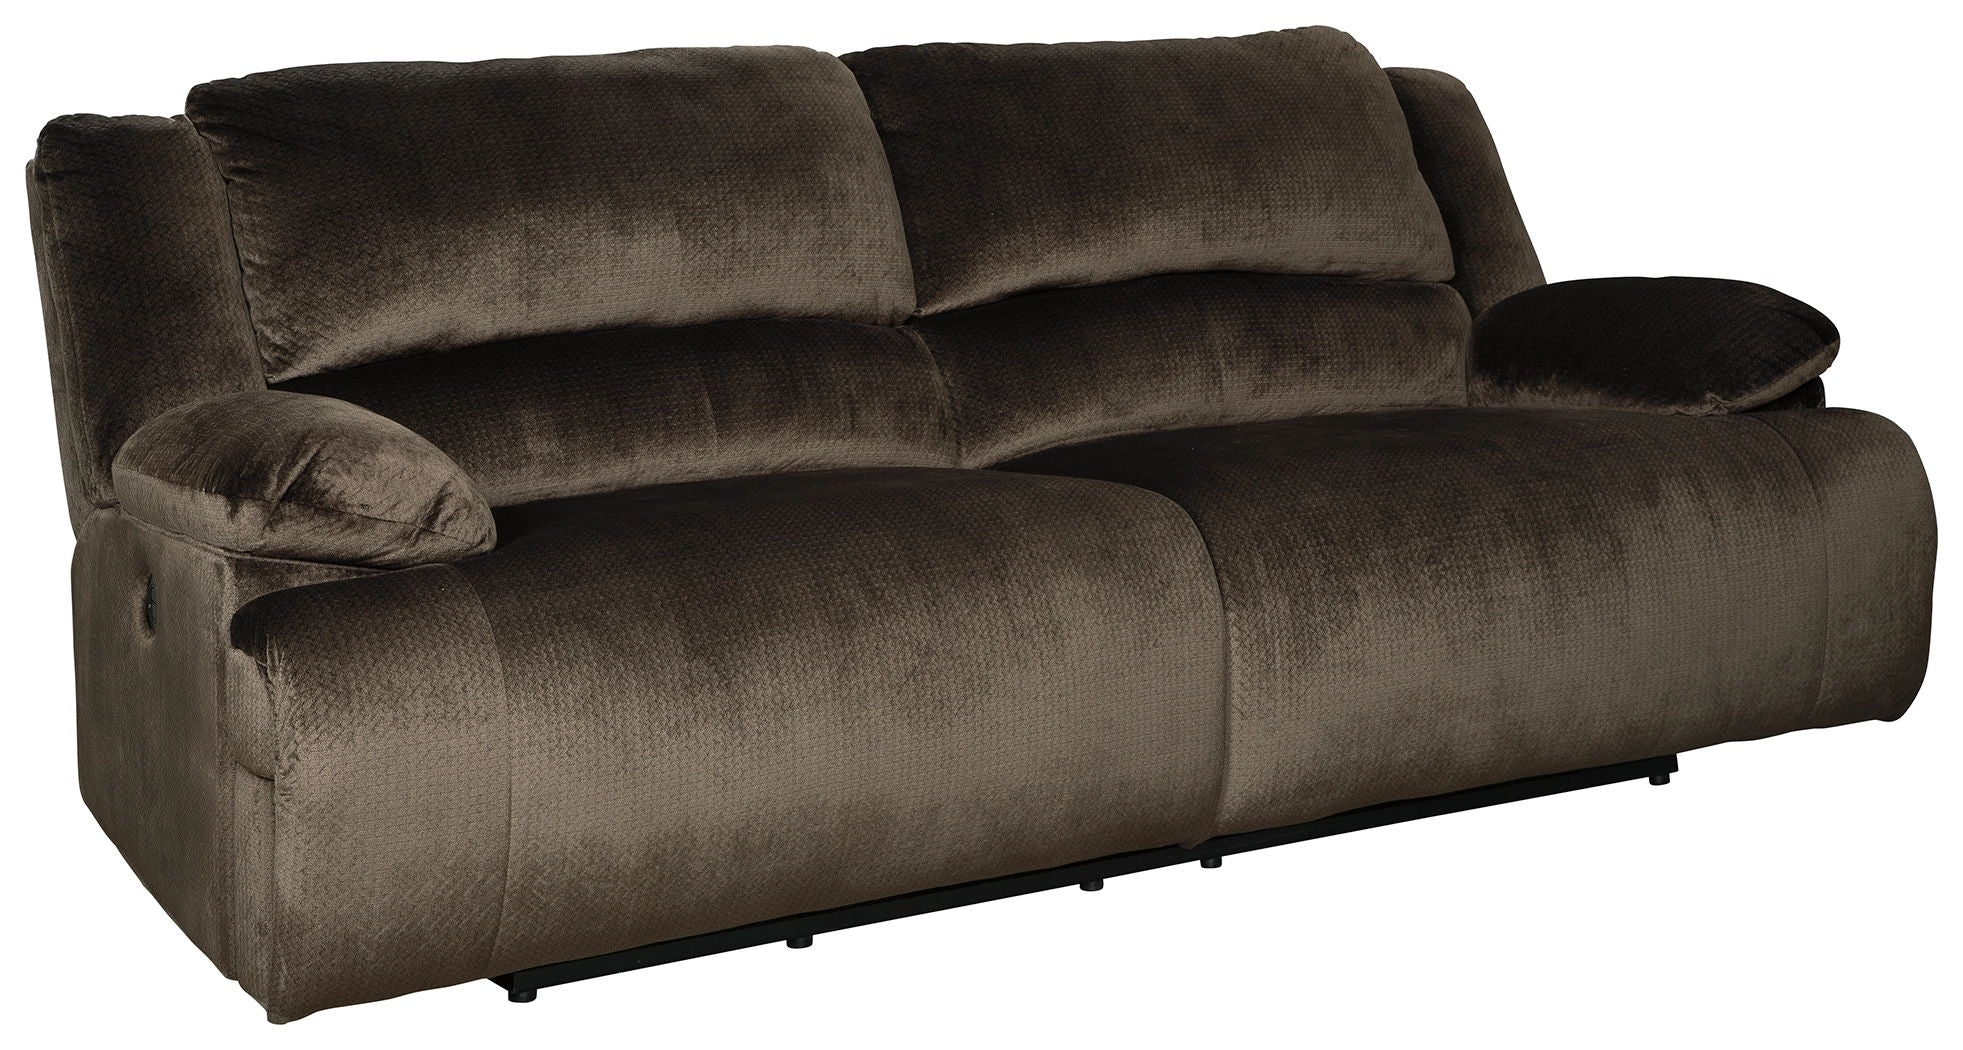 Clonmel Power Reclining Sofa | Calgary's Furniture Store